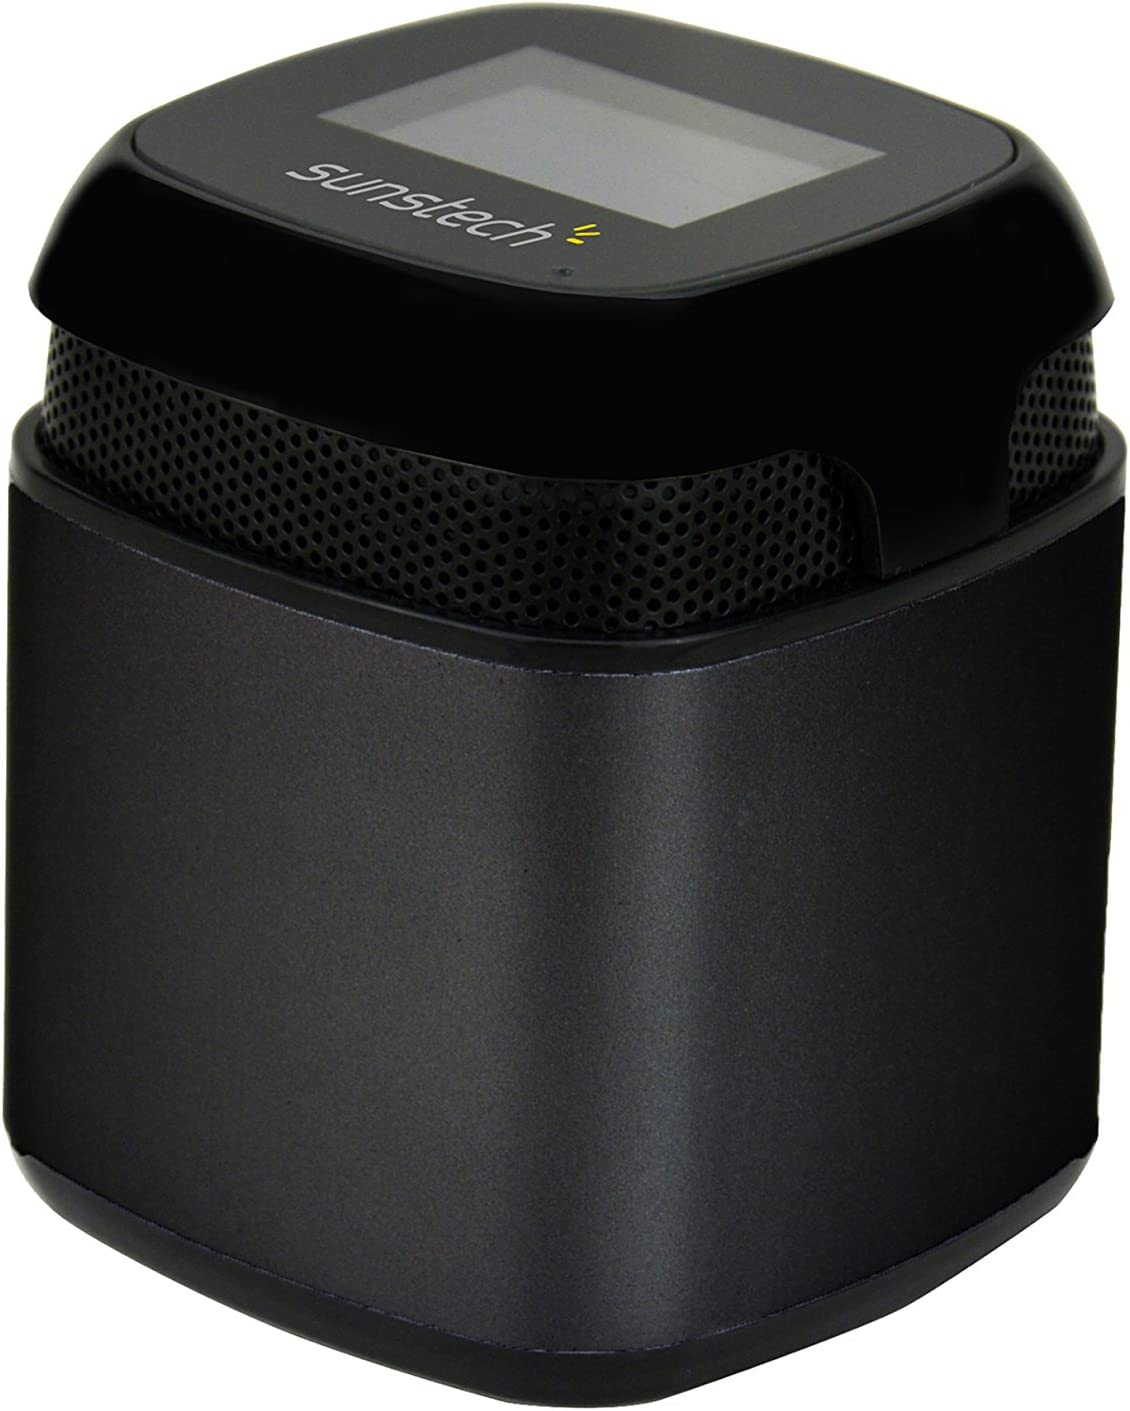 Sunstech SPUBT710BK - Altavoz con Bluetooth (micrófono, FM, SD, USB, AUX-In, 3 W RMS) color negro